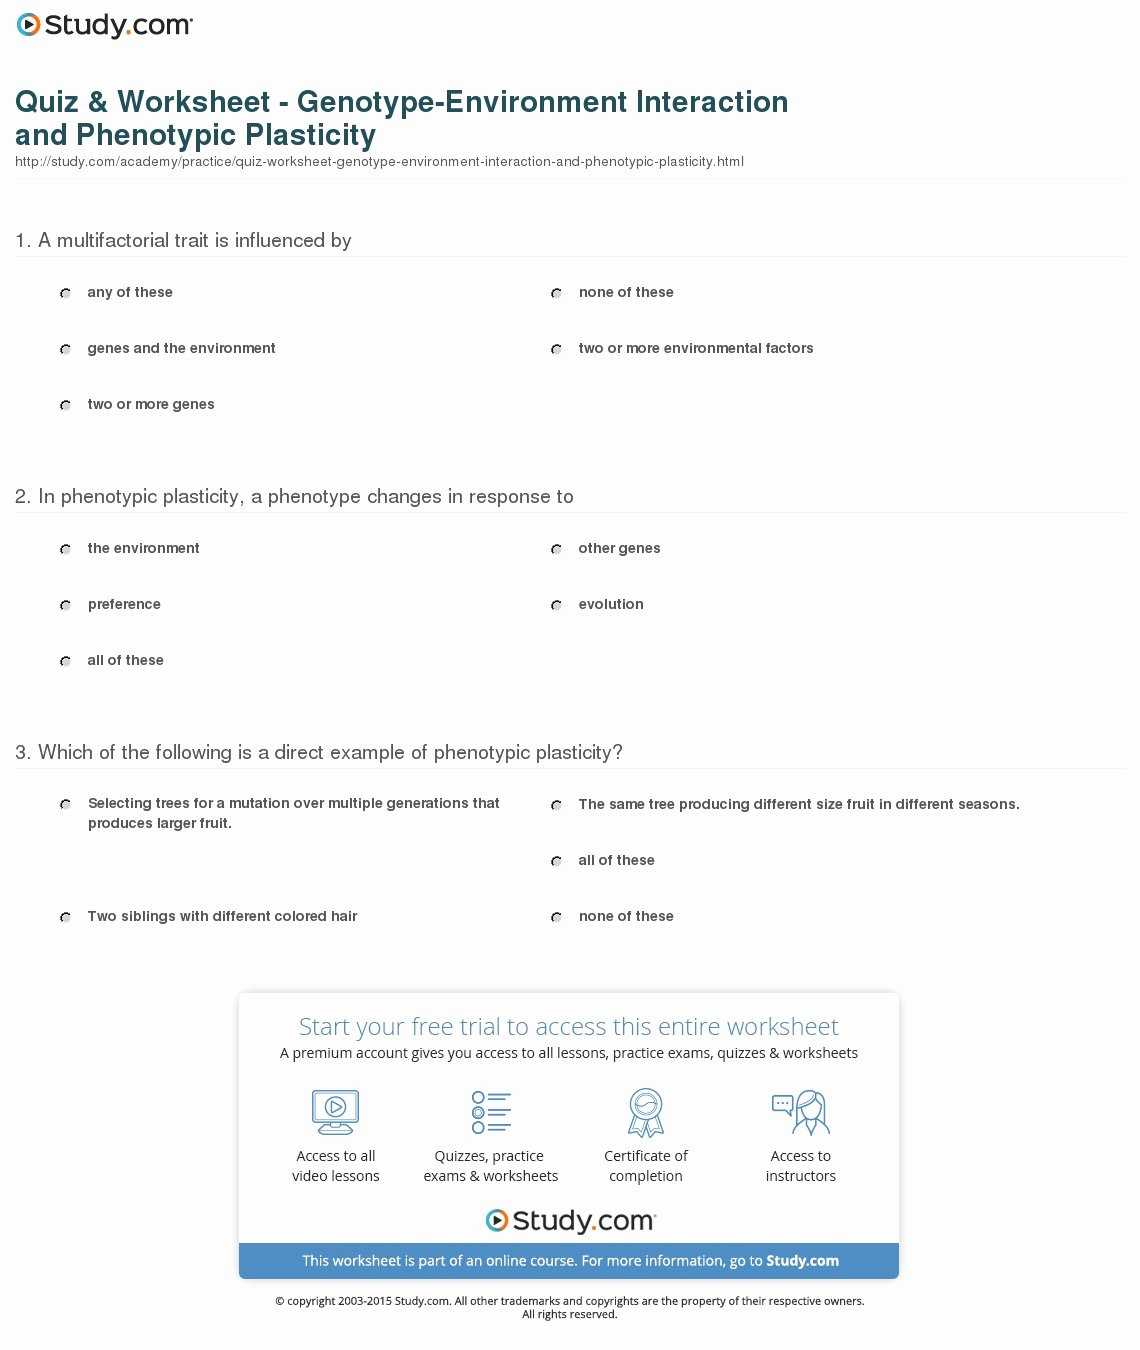 Genotypes and Phenotypes Worksheet Answers Fresh Quiz & Worksheet Genotype Environment Interaction and